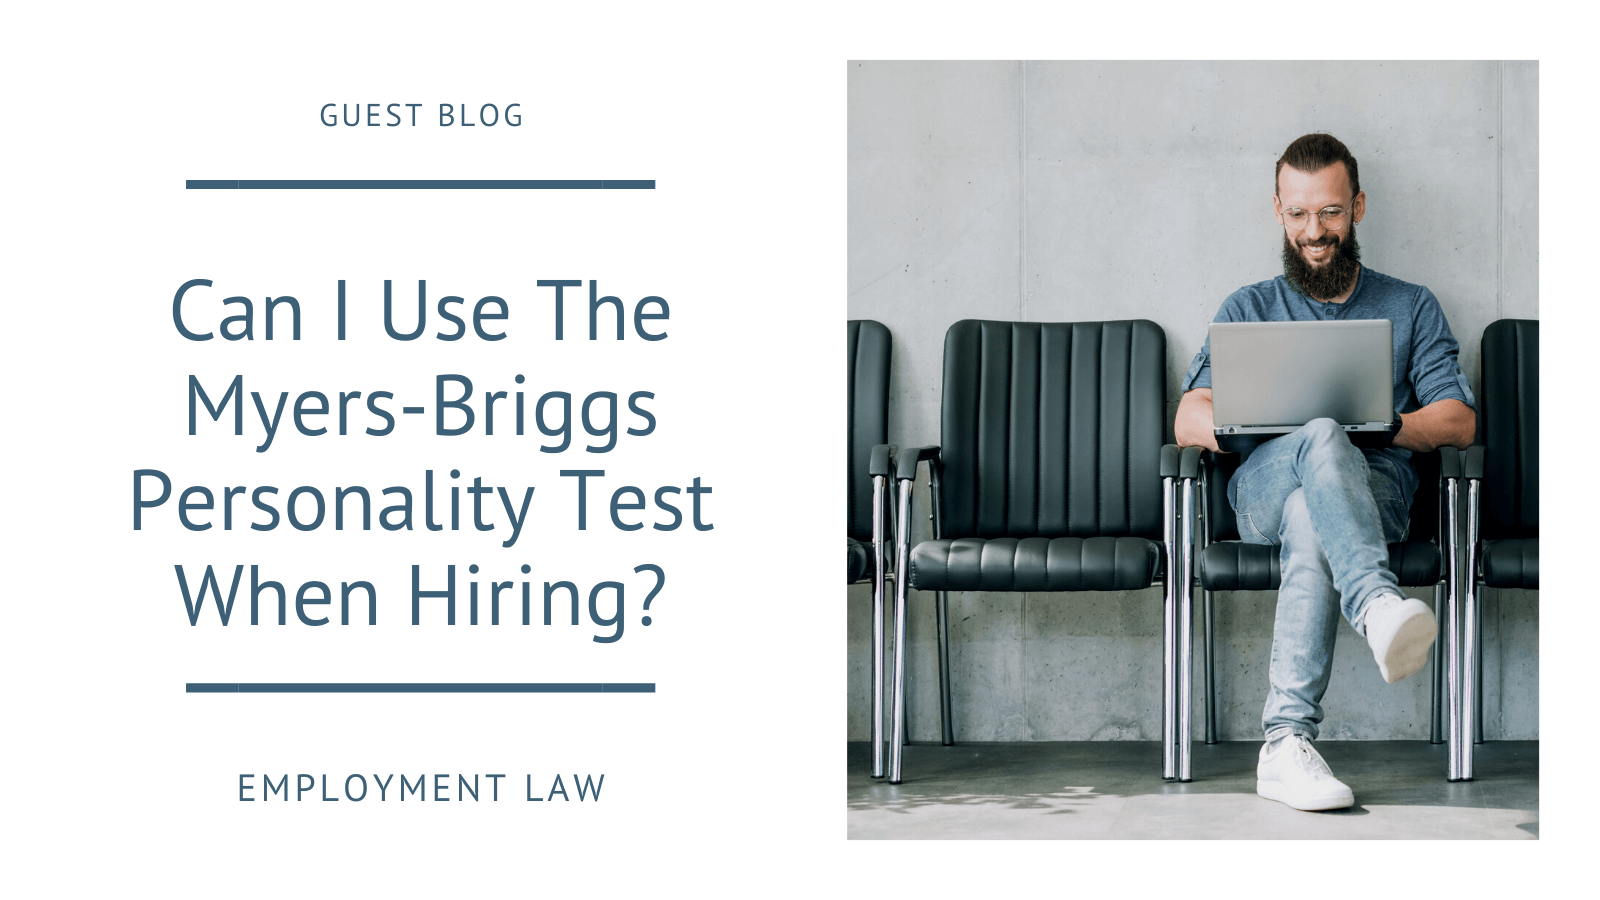 Can I Use The Myers-Briggs Personality Test When Hiring?